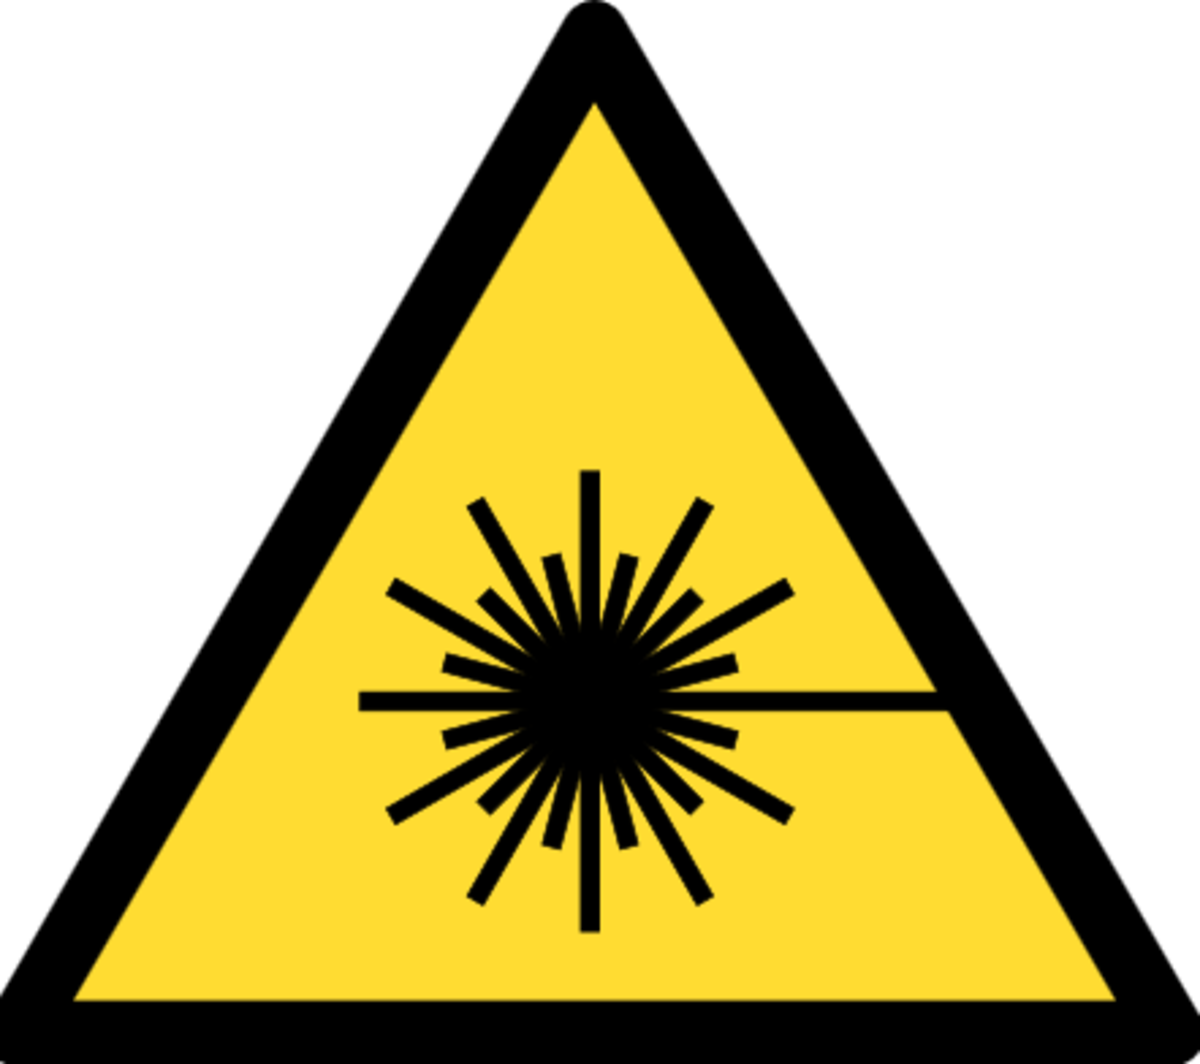 Laboratory And Lab Safety Signs Symbols And Their Meanings Owlcation